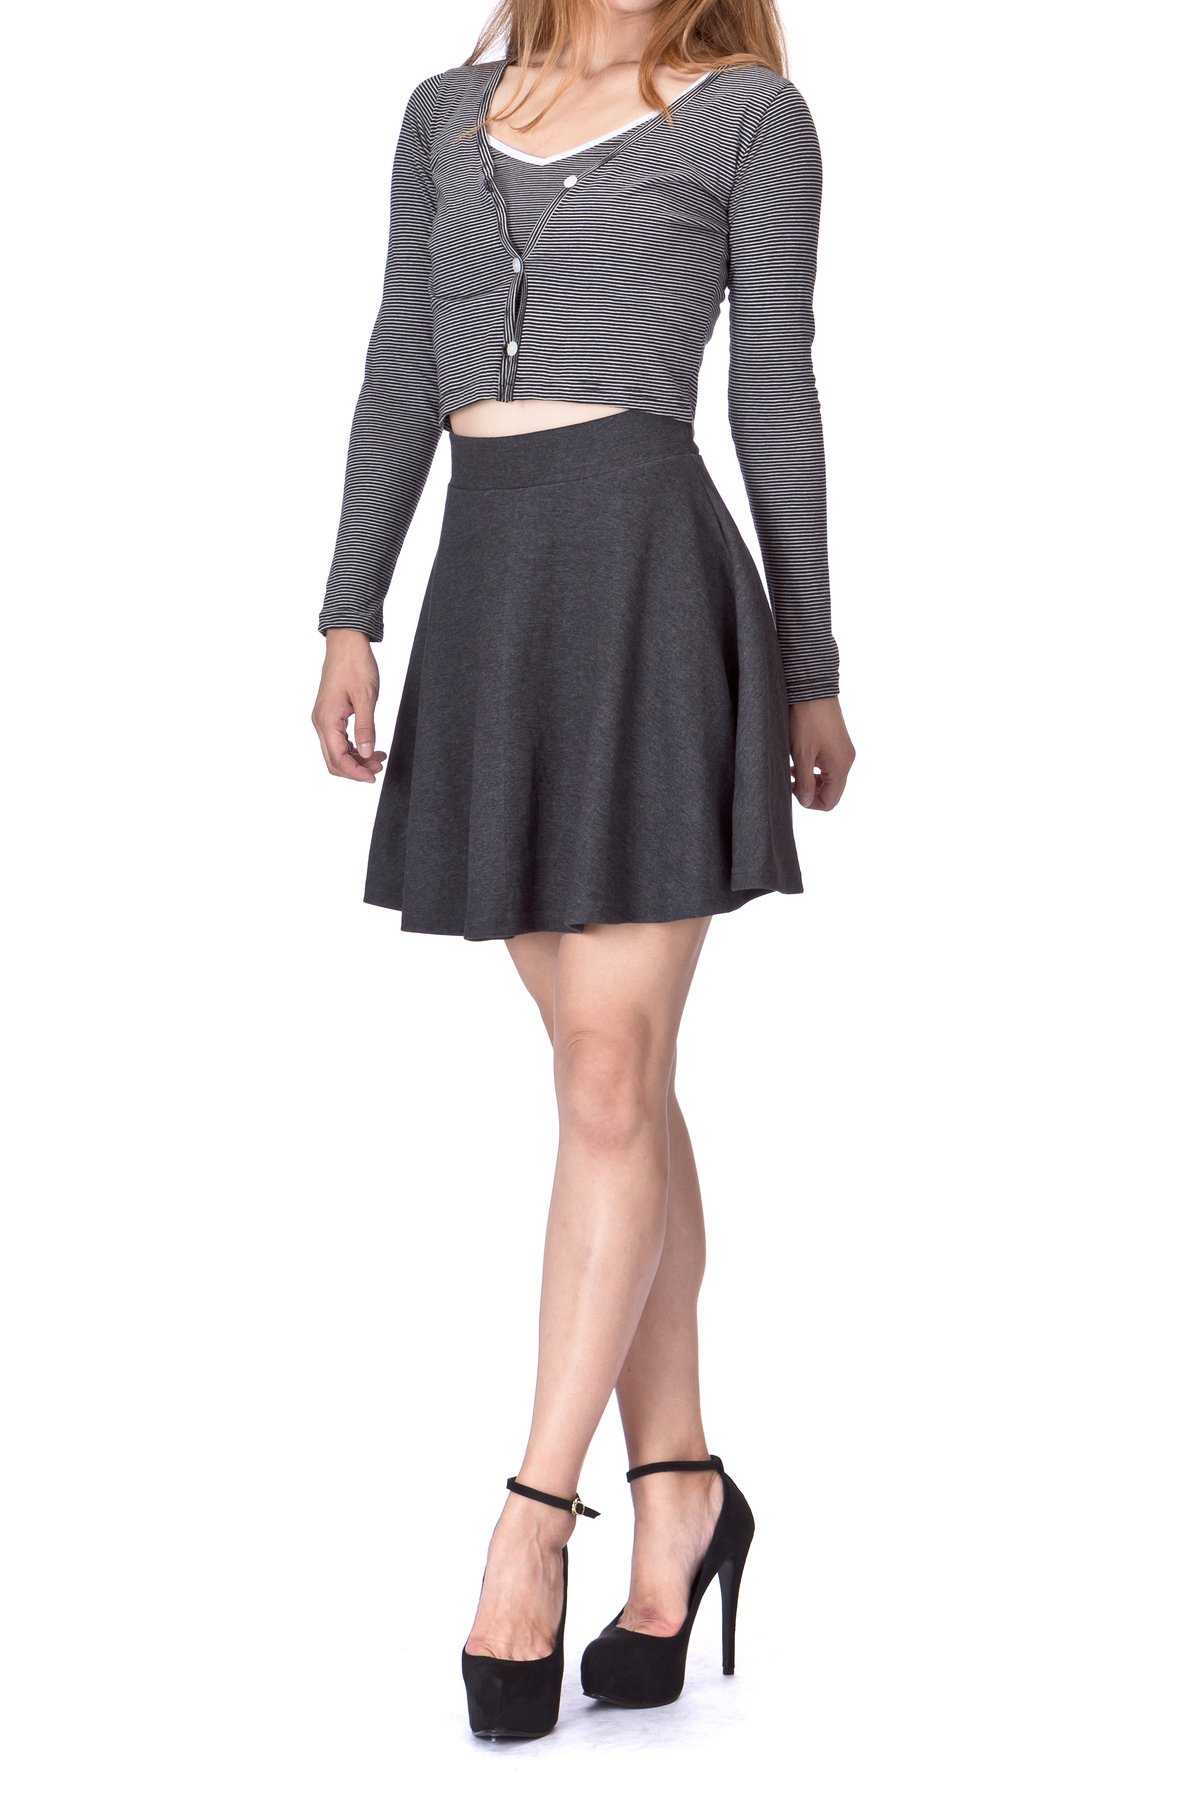 Basic Solid Stretchy Cotton High Waist A line Flared Skater Mini Skirt Charcoal 02